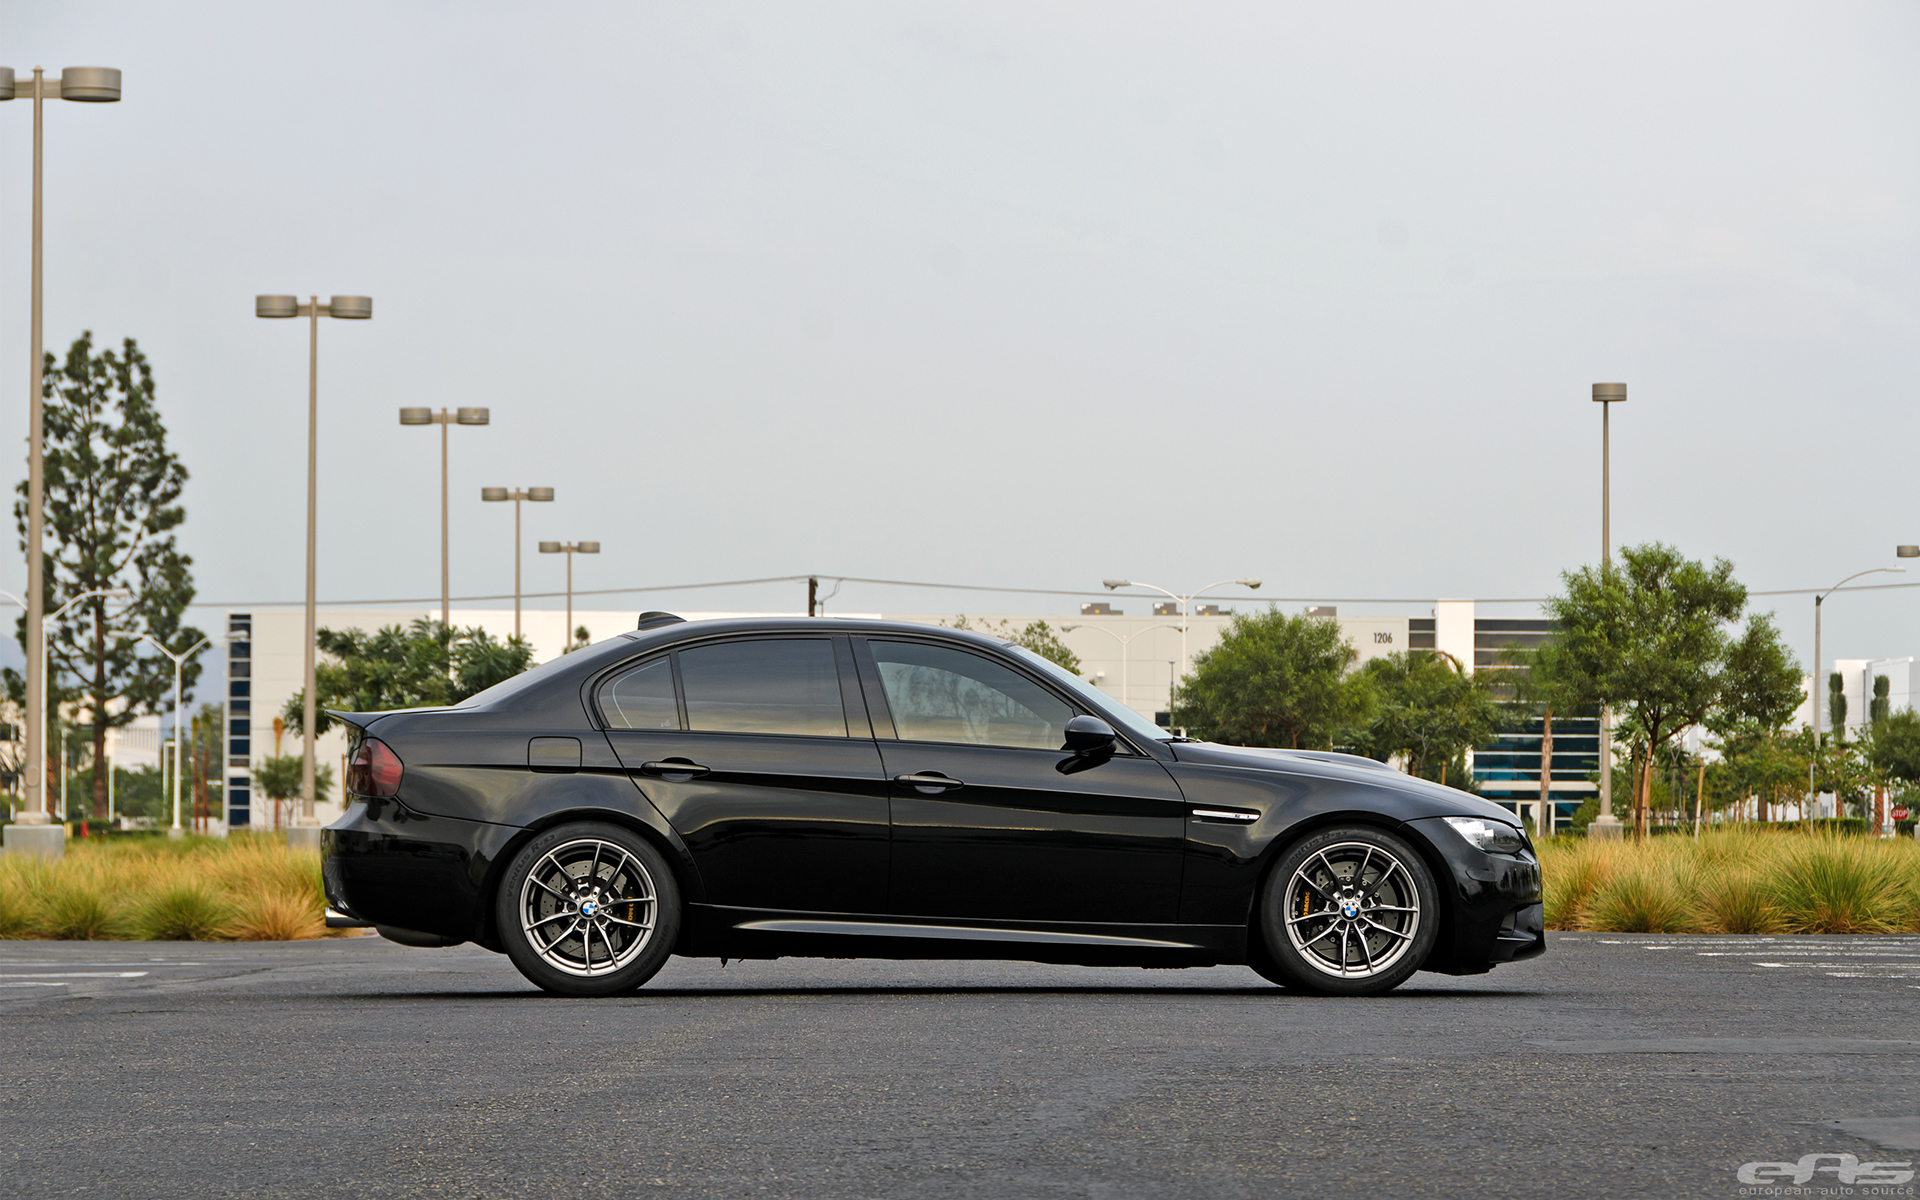 Jet Black Bmw E90 M3 Project